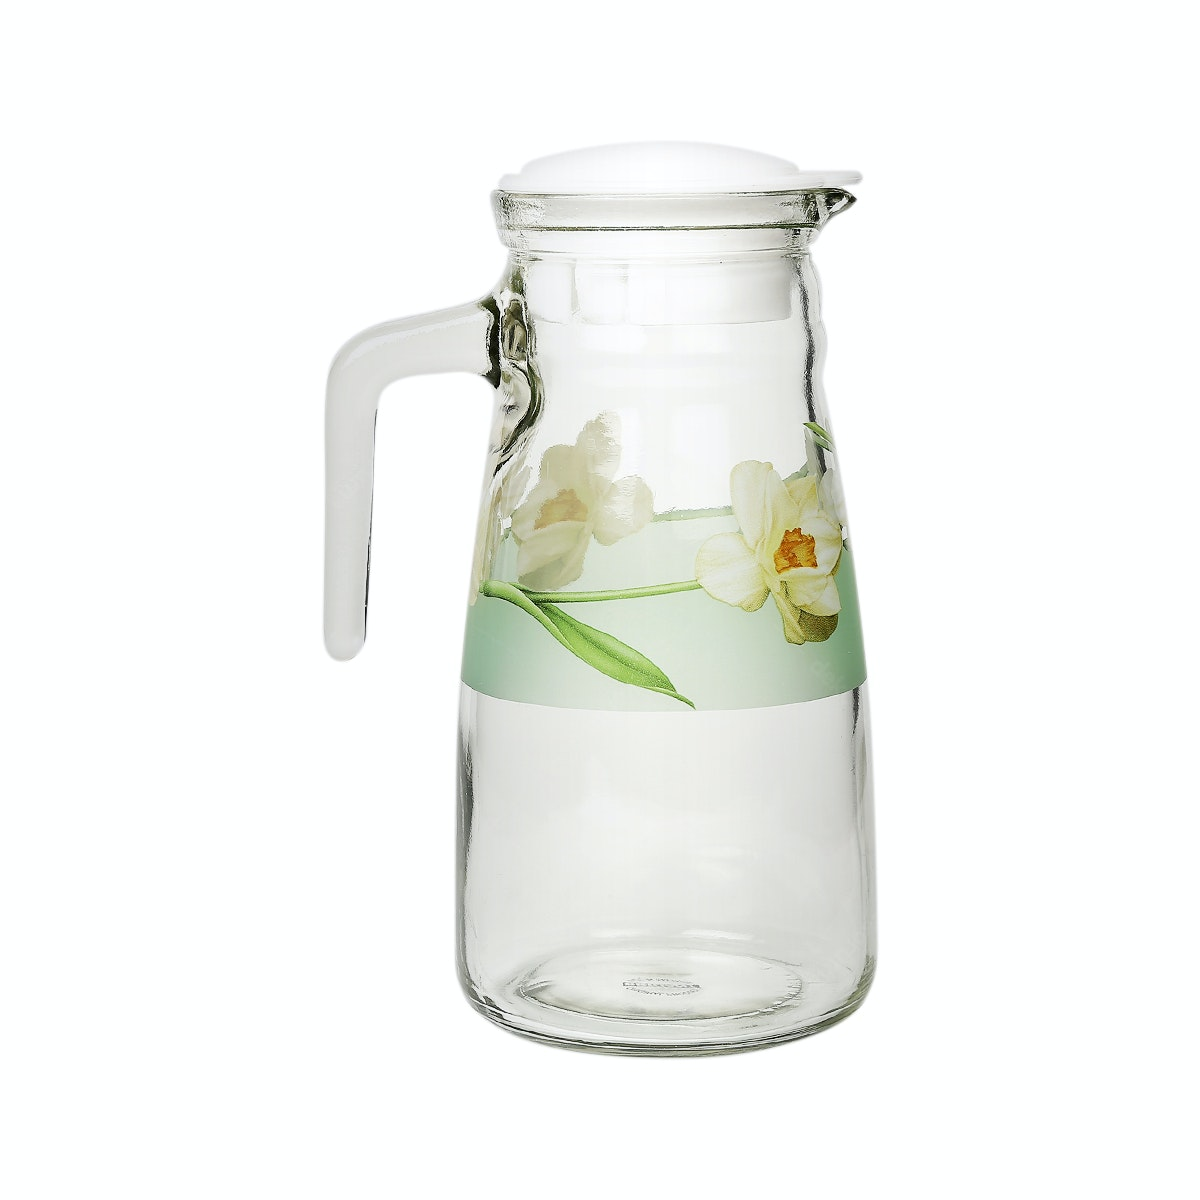 Brilliant Analise 1pc 1L Pitcher with Lid - Green Flower